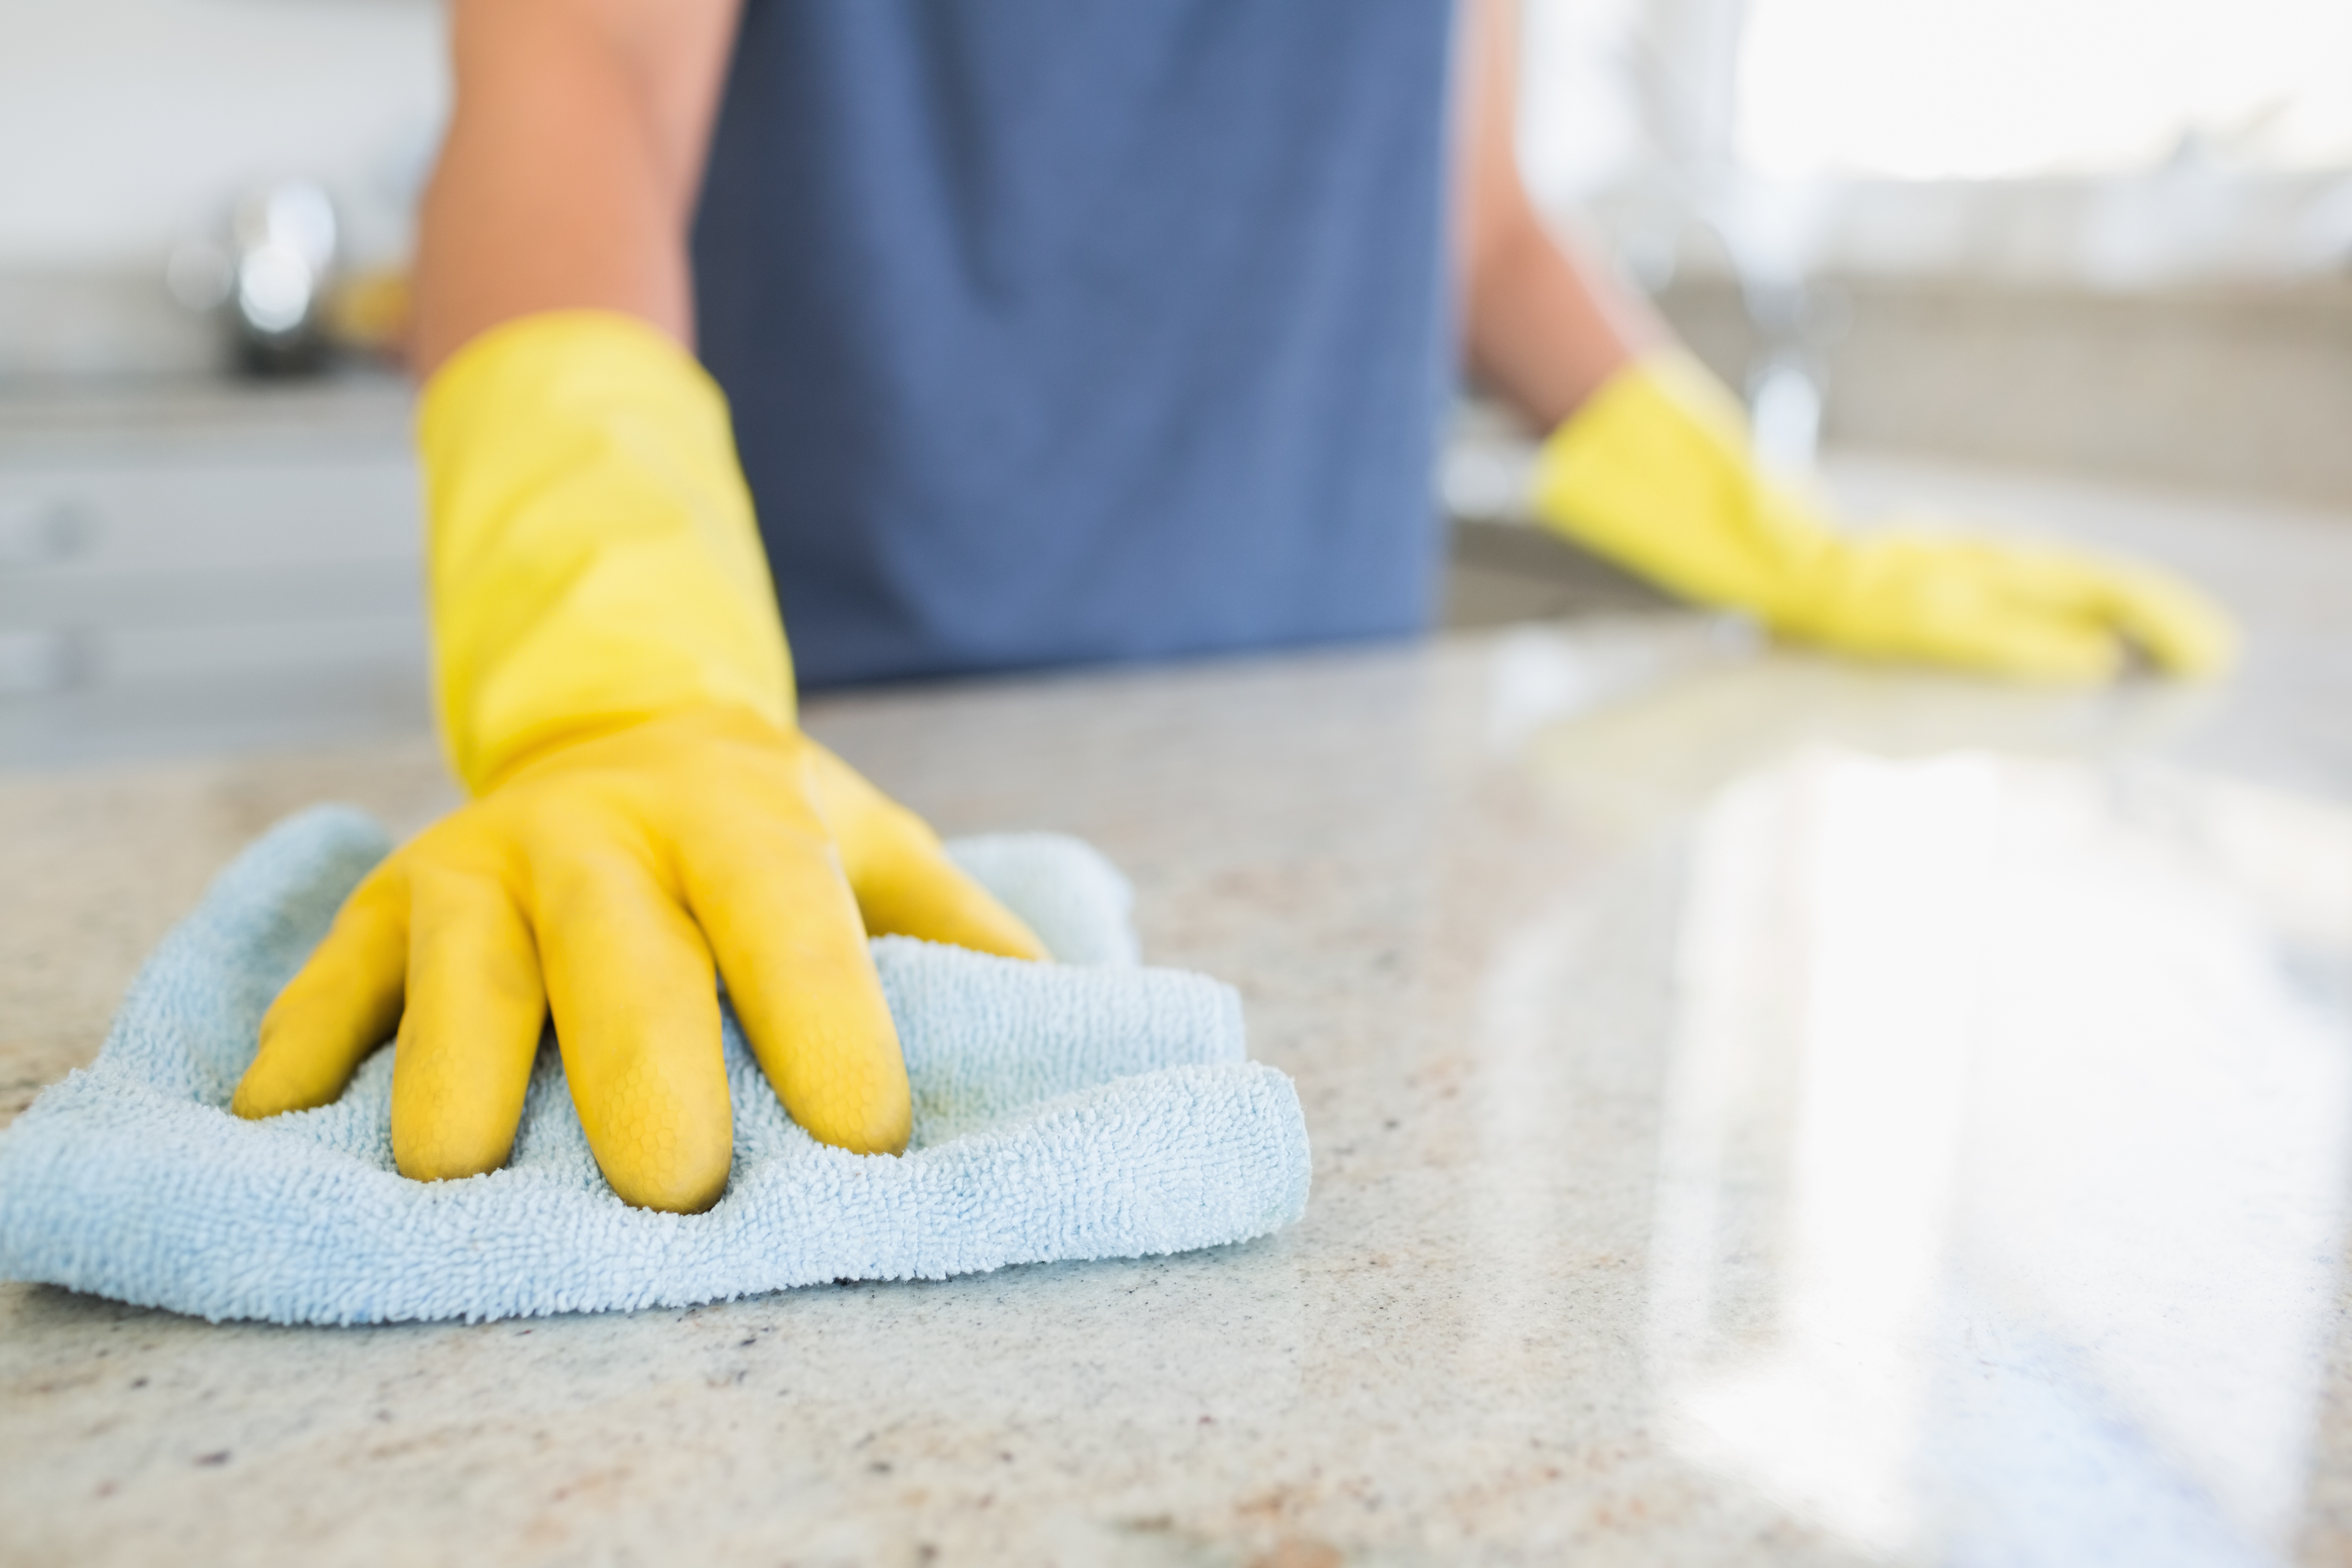 woman wearing yellow cleaning gloves wiping kitchen counter with blue towel